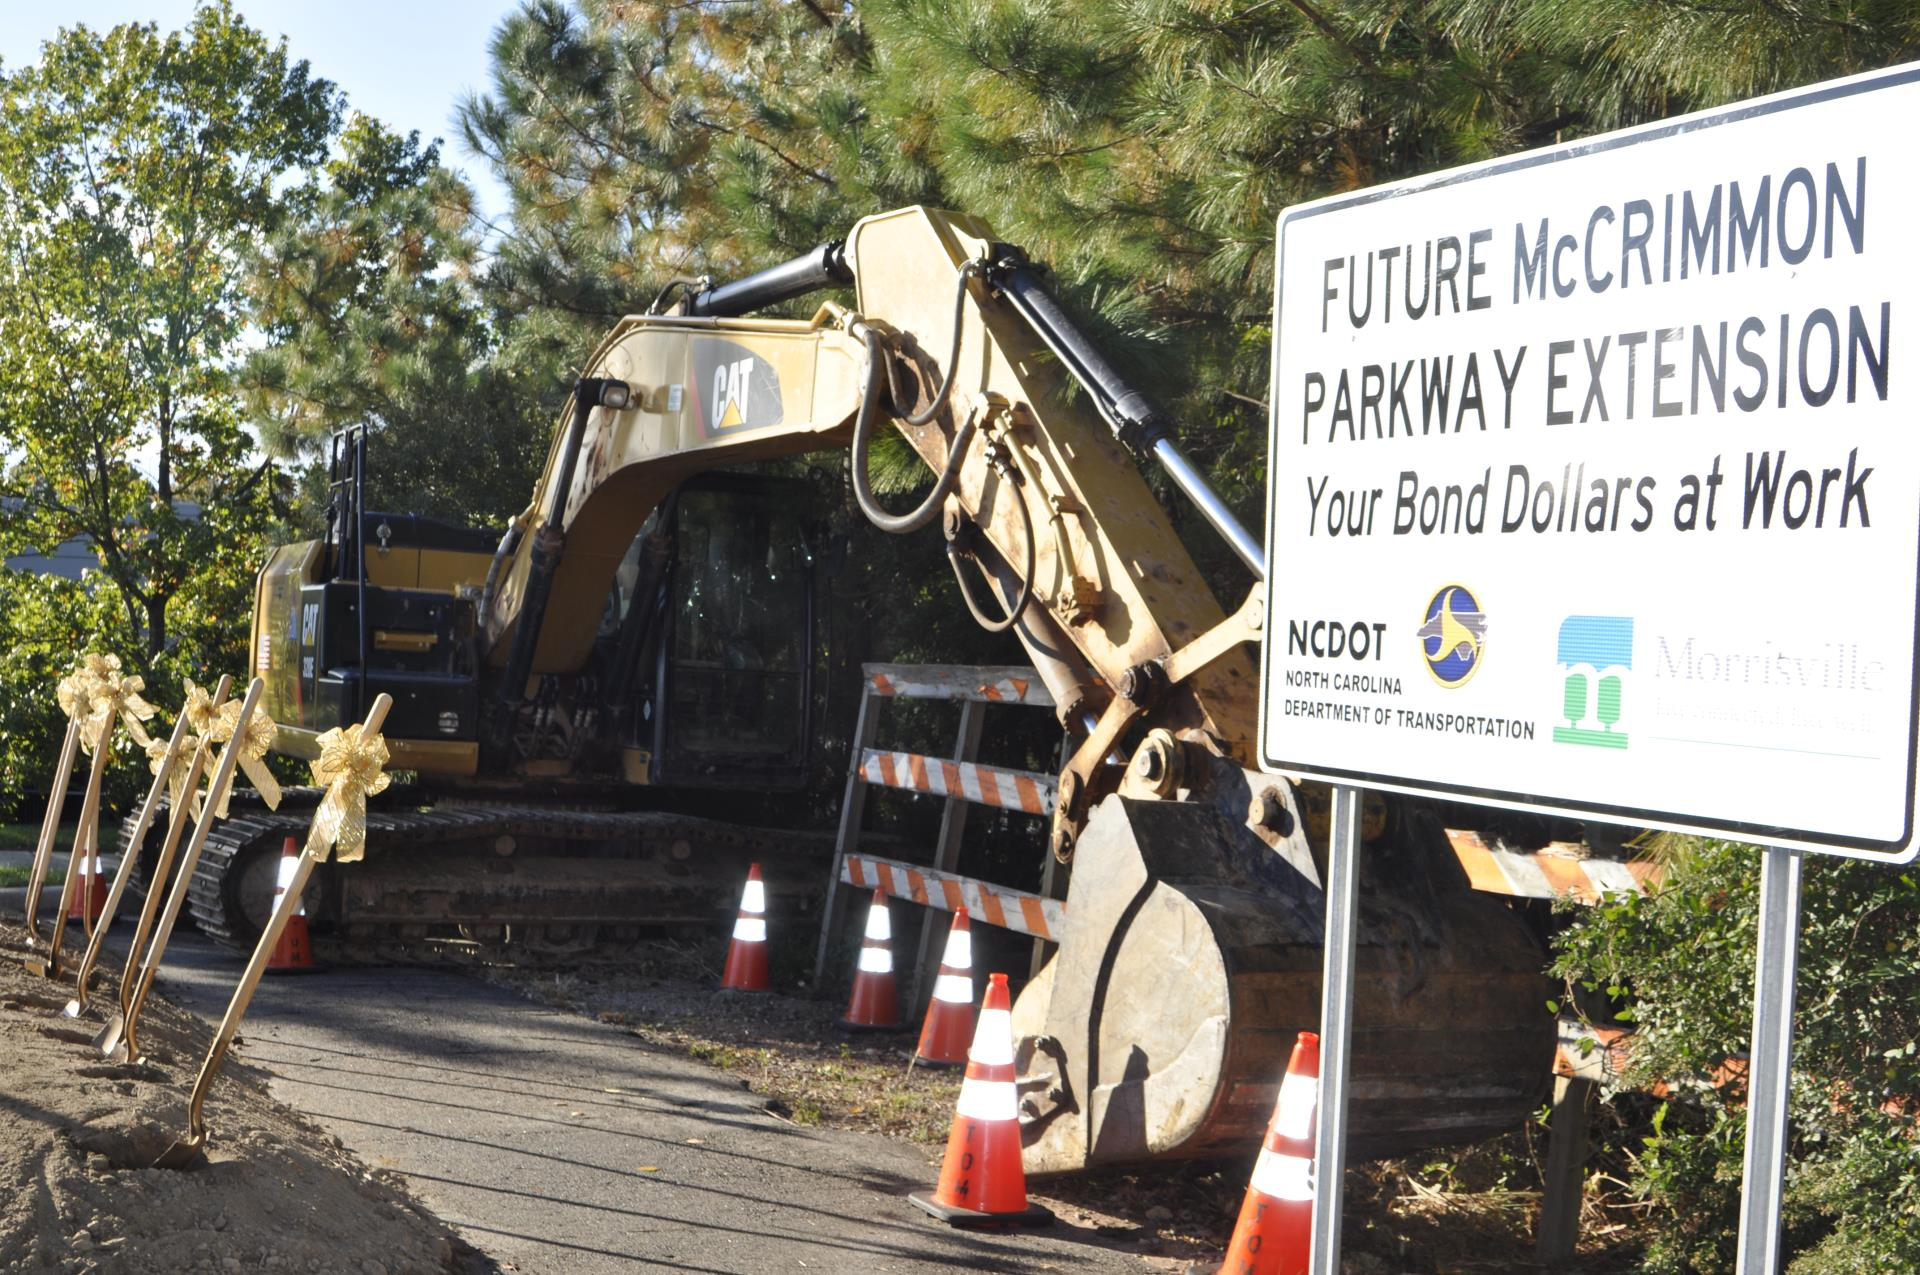 McCrimmon Parkway Extension Opening | Town of Morrisville, NC